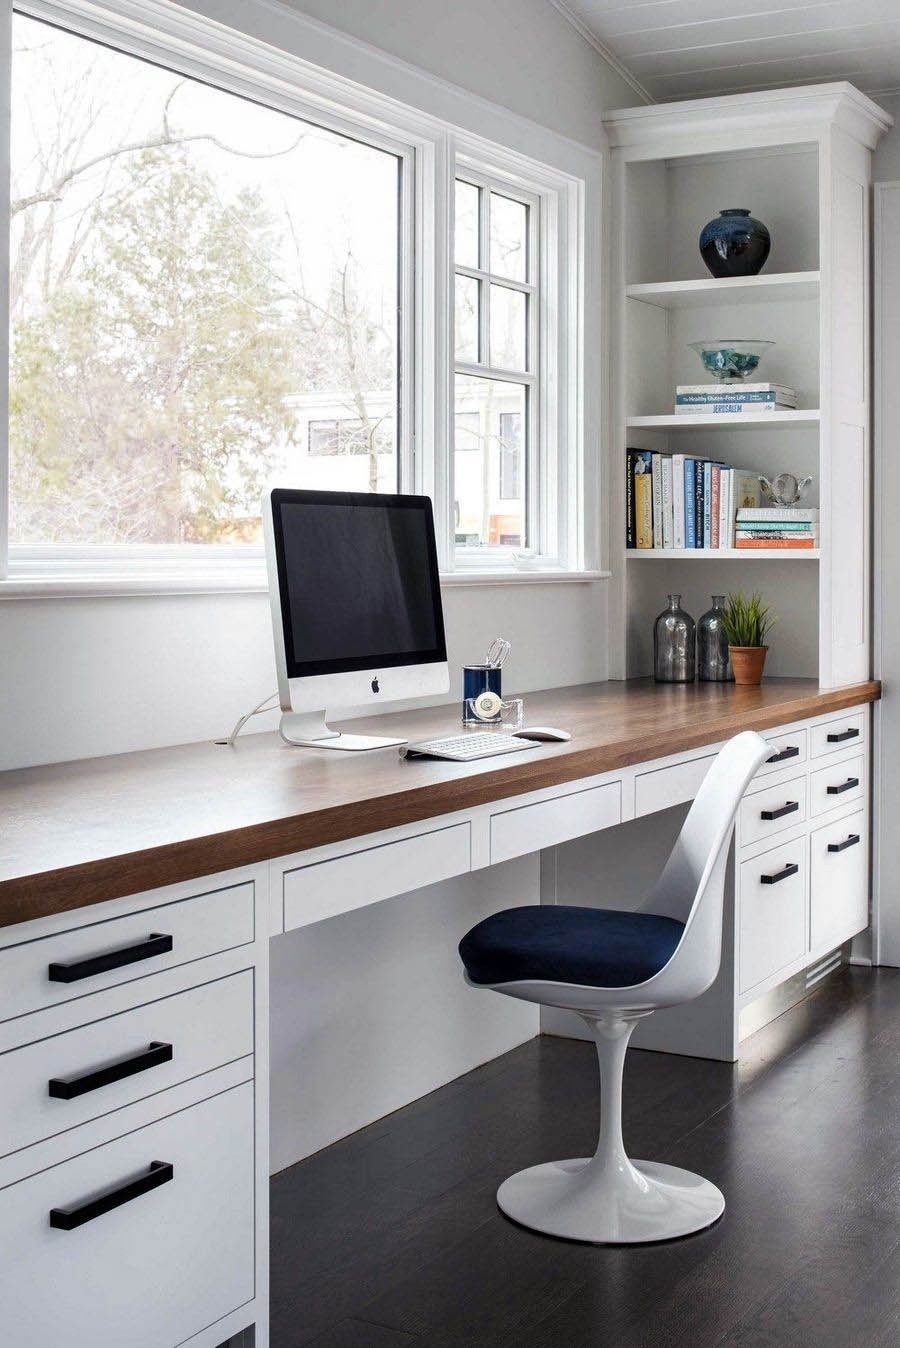 10x10 Office Layout: Pretty 10x10 Home Office Interior Design Only In Omahhome